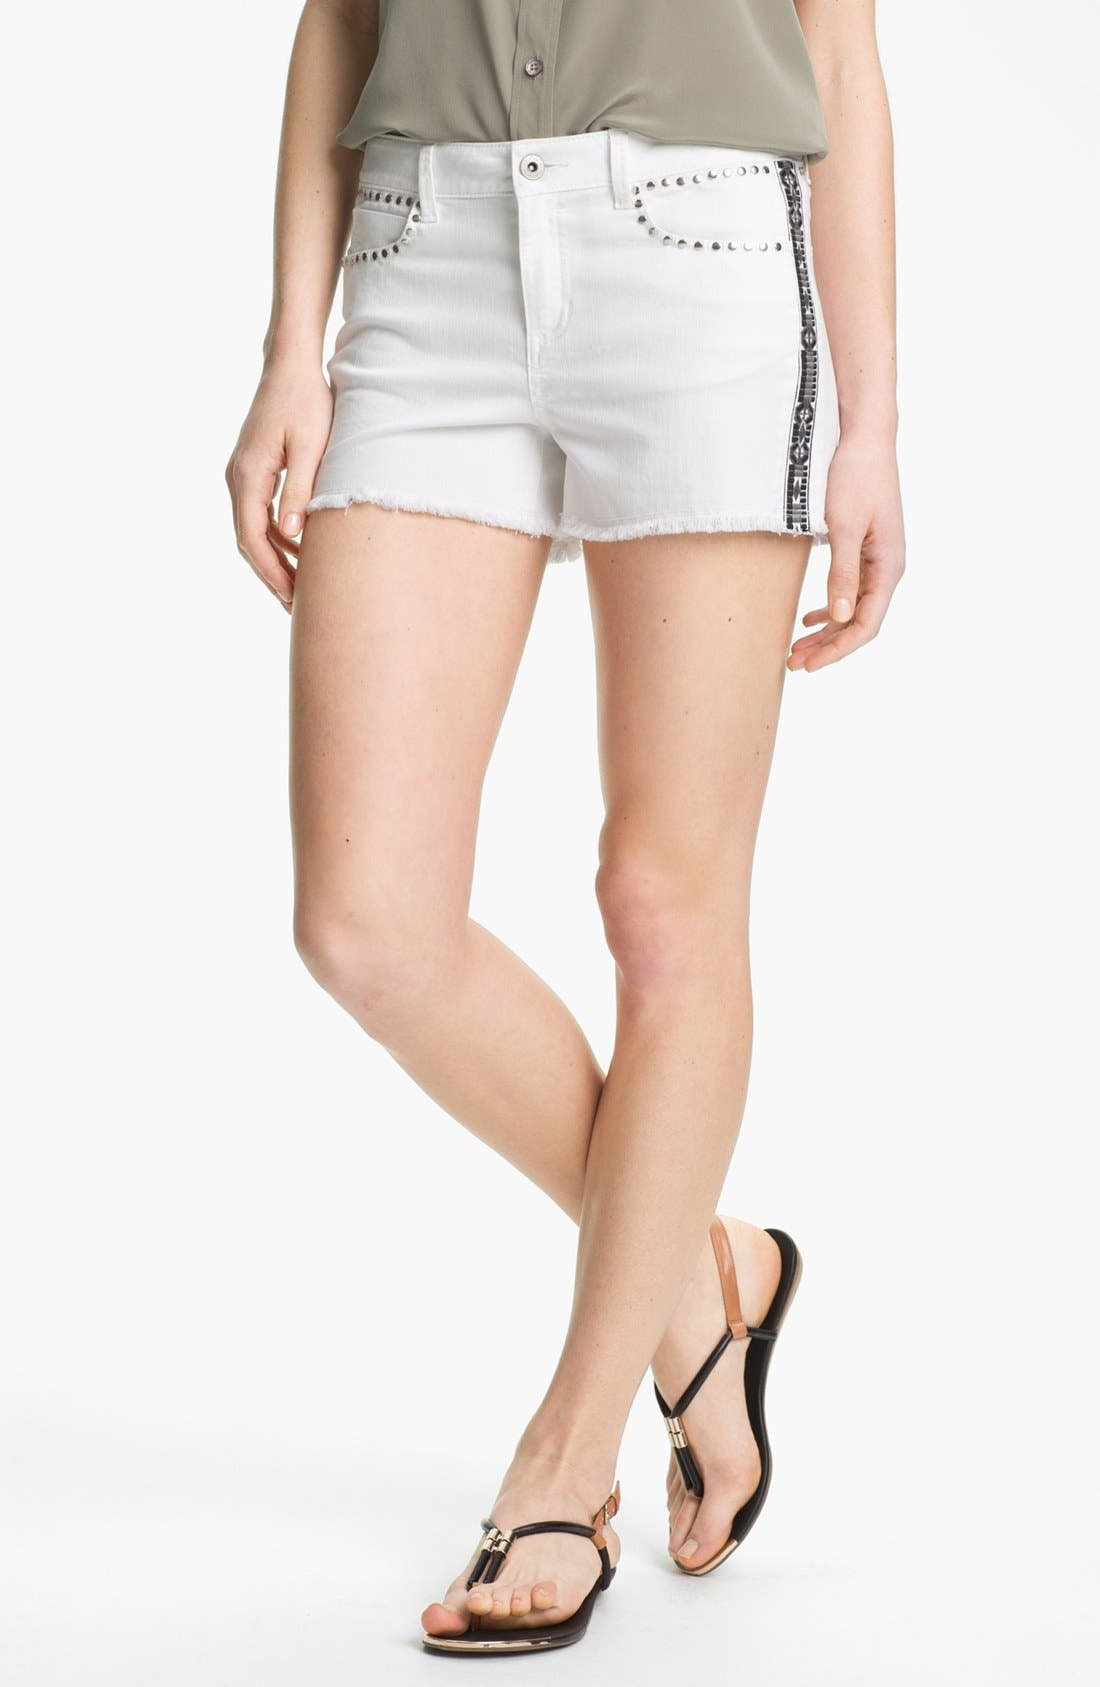 Alternate Image 1 Selected - Two by Vince Camuto Embroidered Studded Cutoff Denim Shorts (Ultra White)